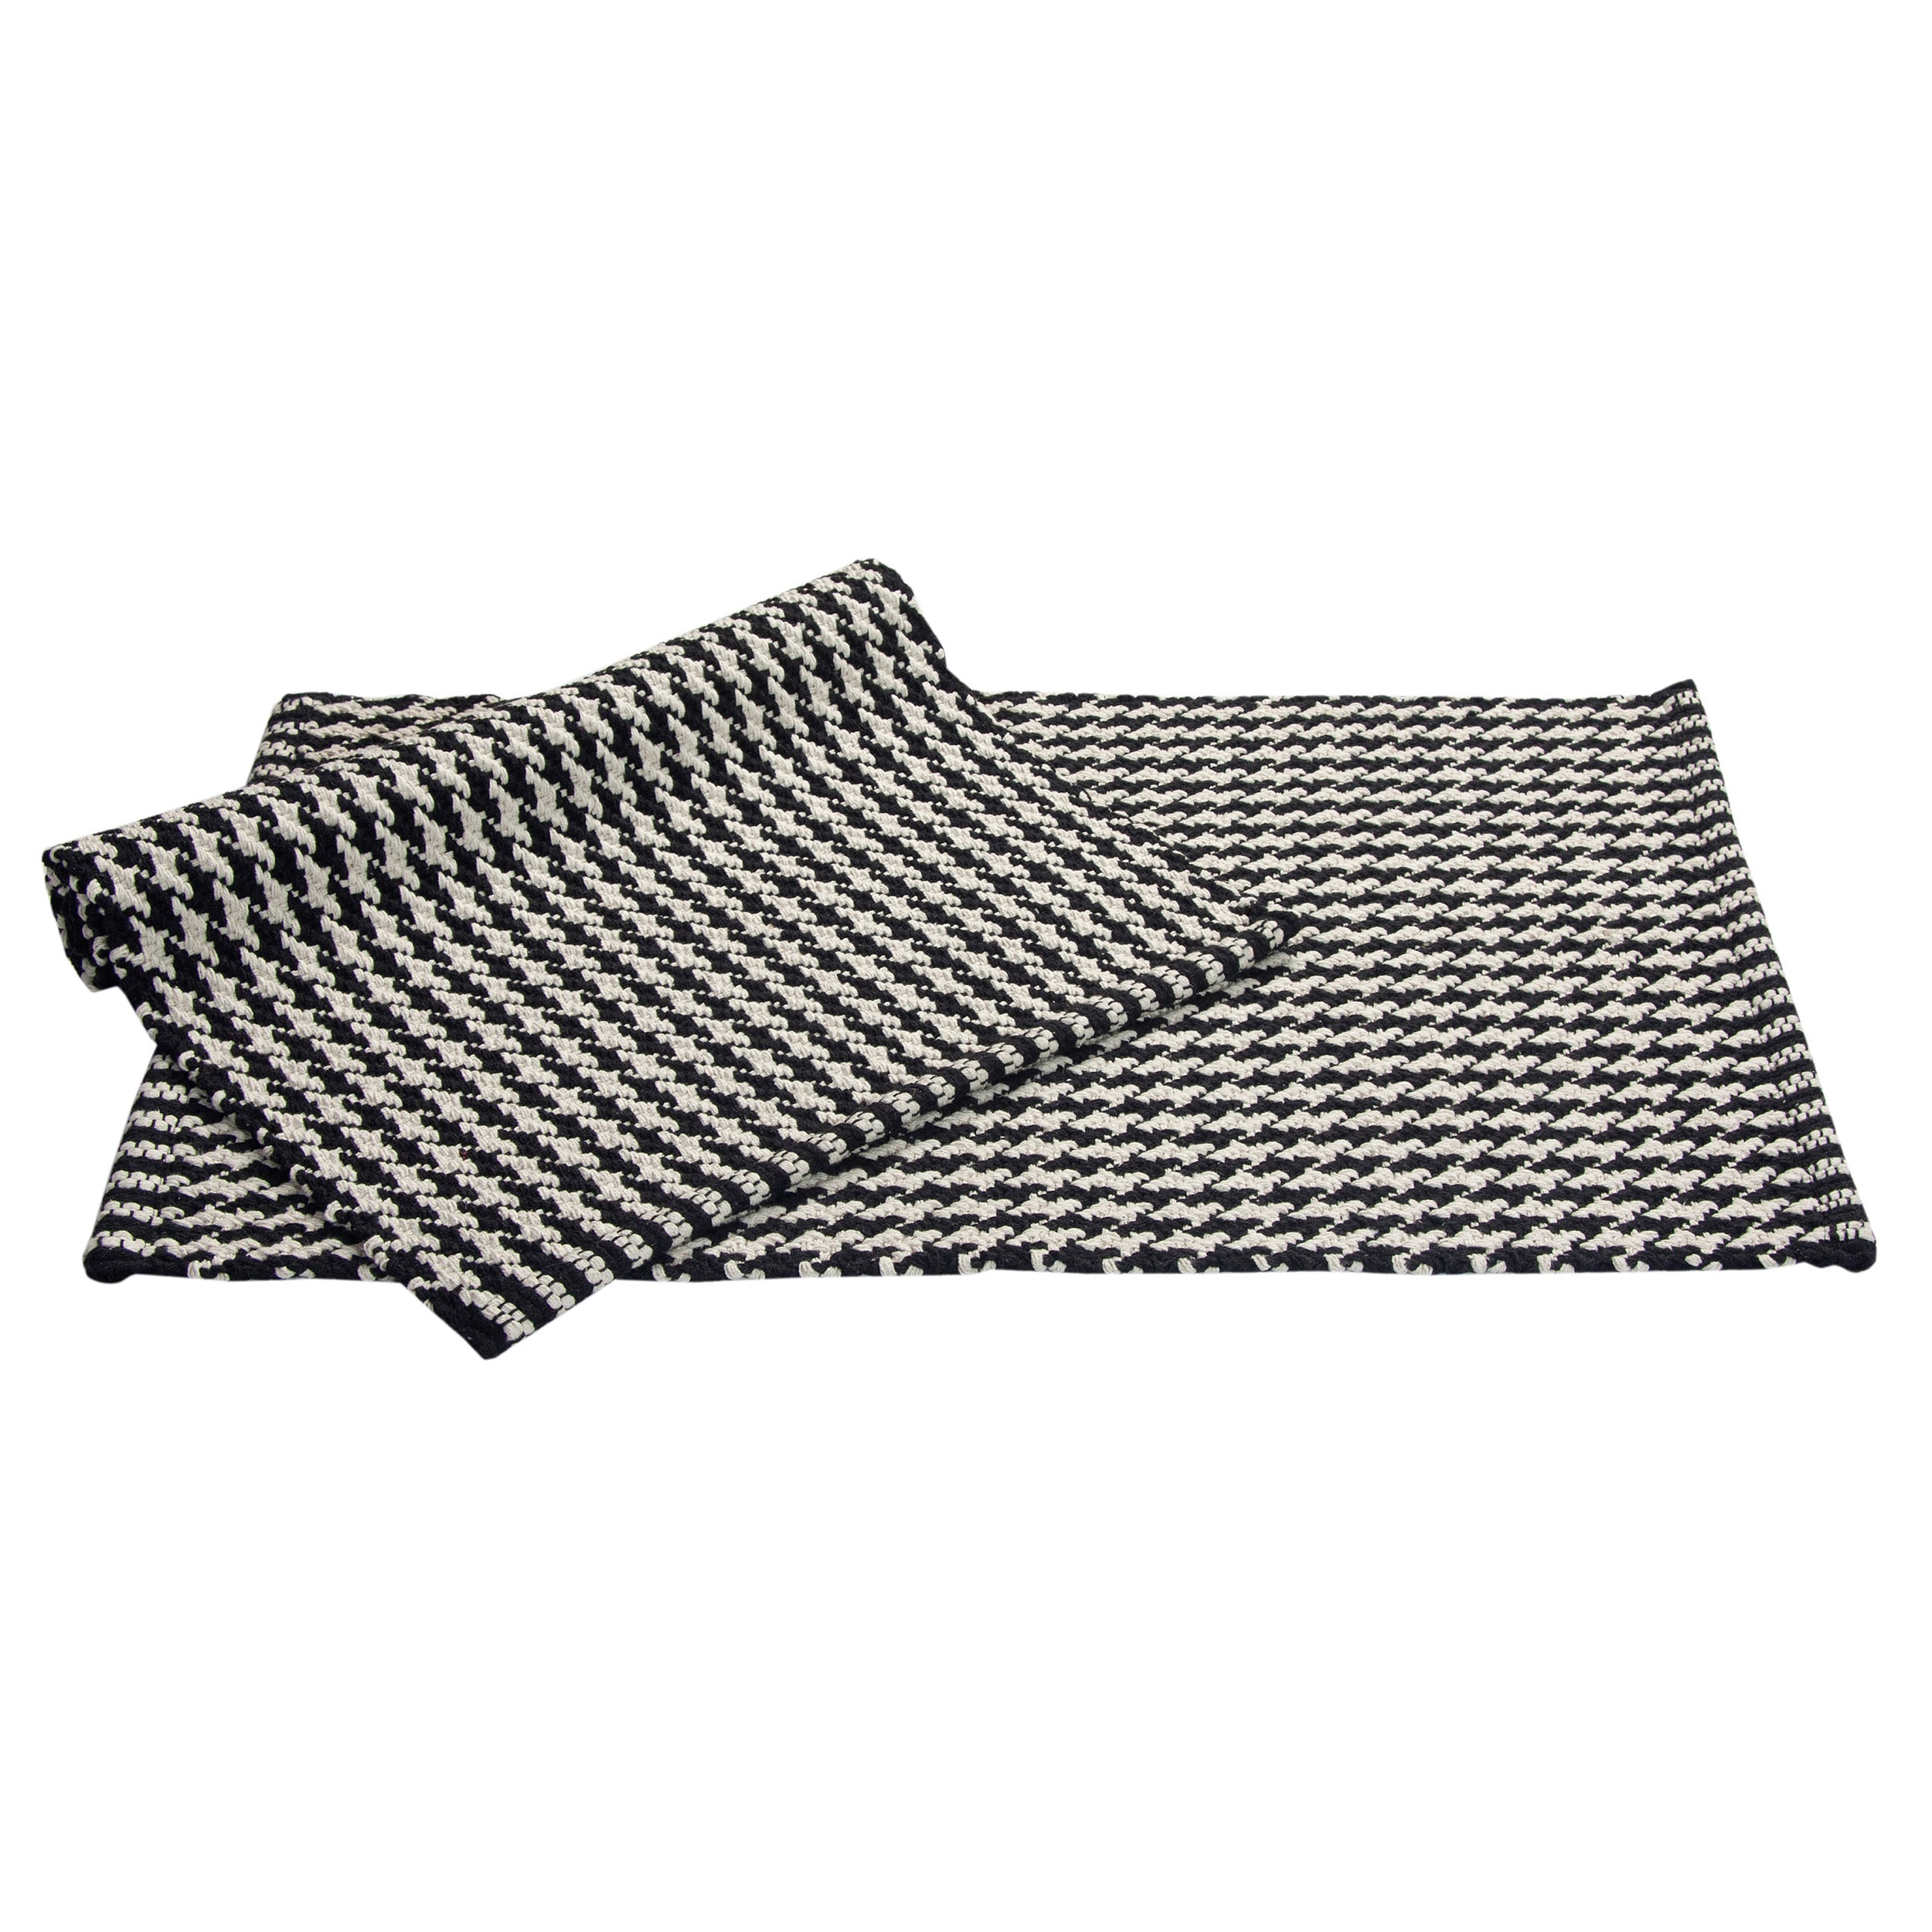 Portland Houndstooth 2 Piece Black Accent Rug Set 1 9 X 10 Free Shipping On Orders Over 45 10397124